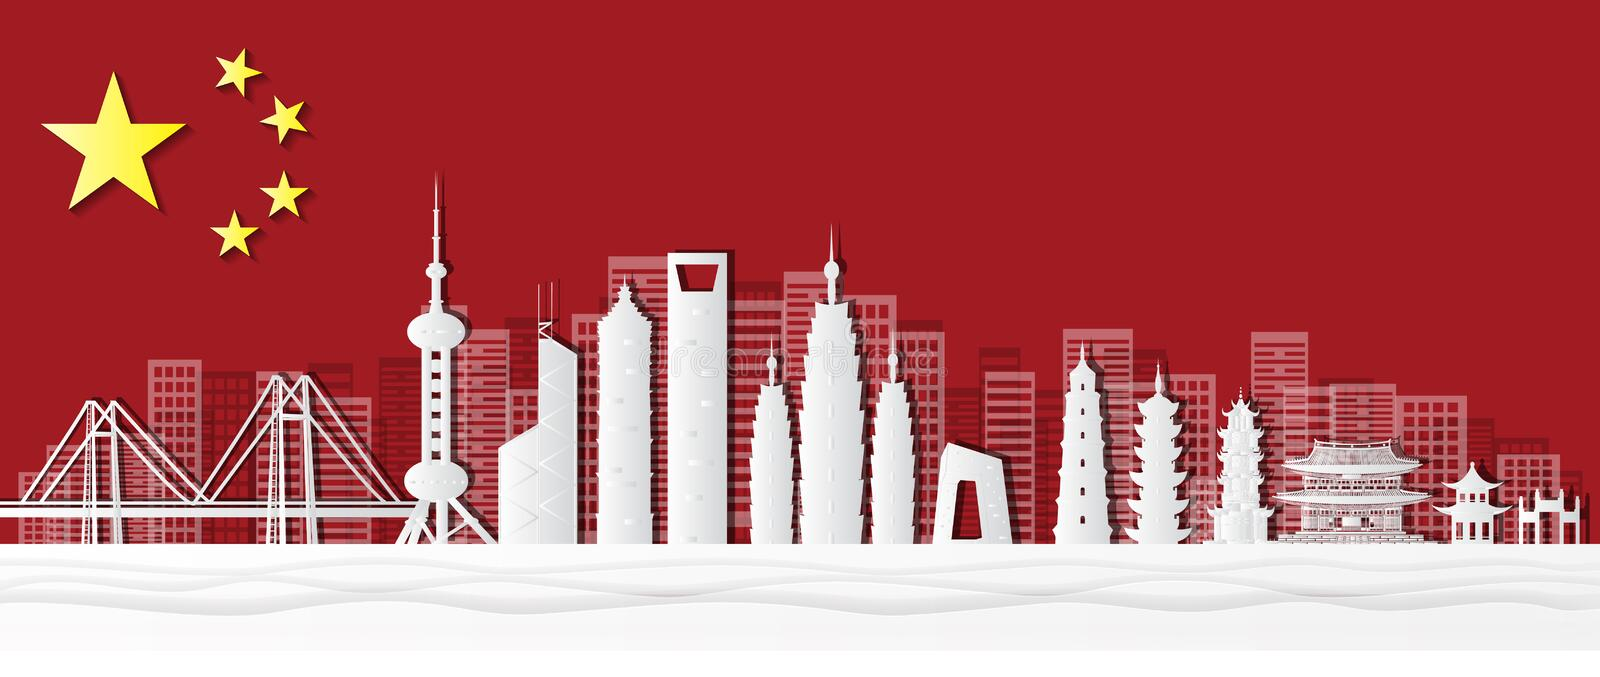 Shanghai, China Postcards of world-famous landmarks, panoramas, tours, world-famous places in paper cut style vector illustration royalty free illustration